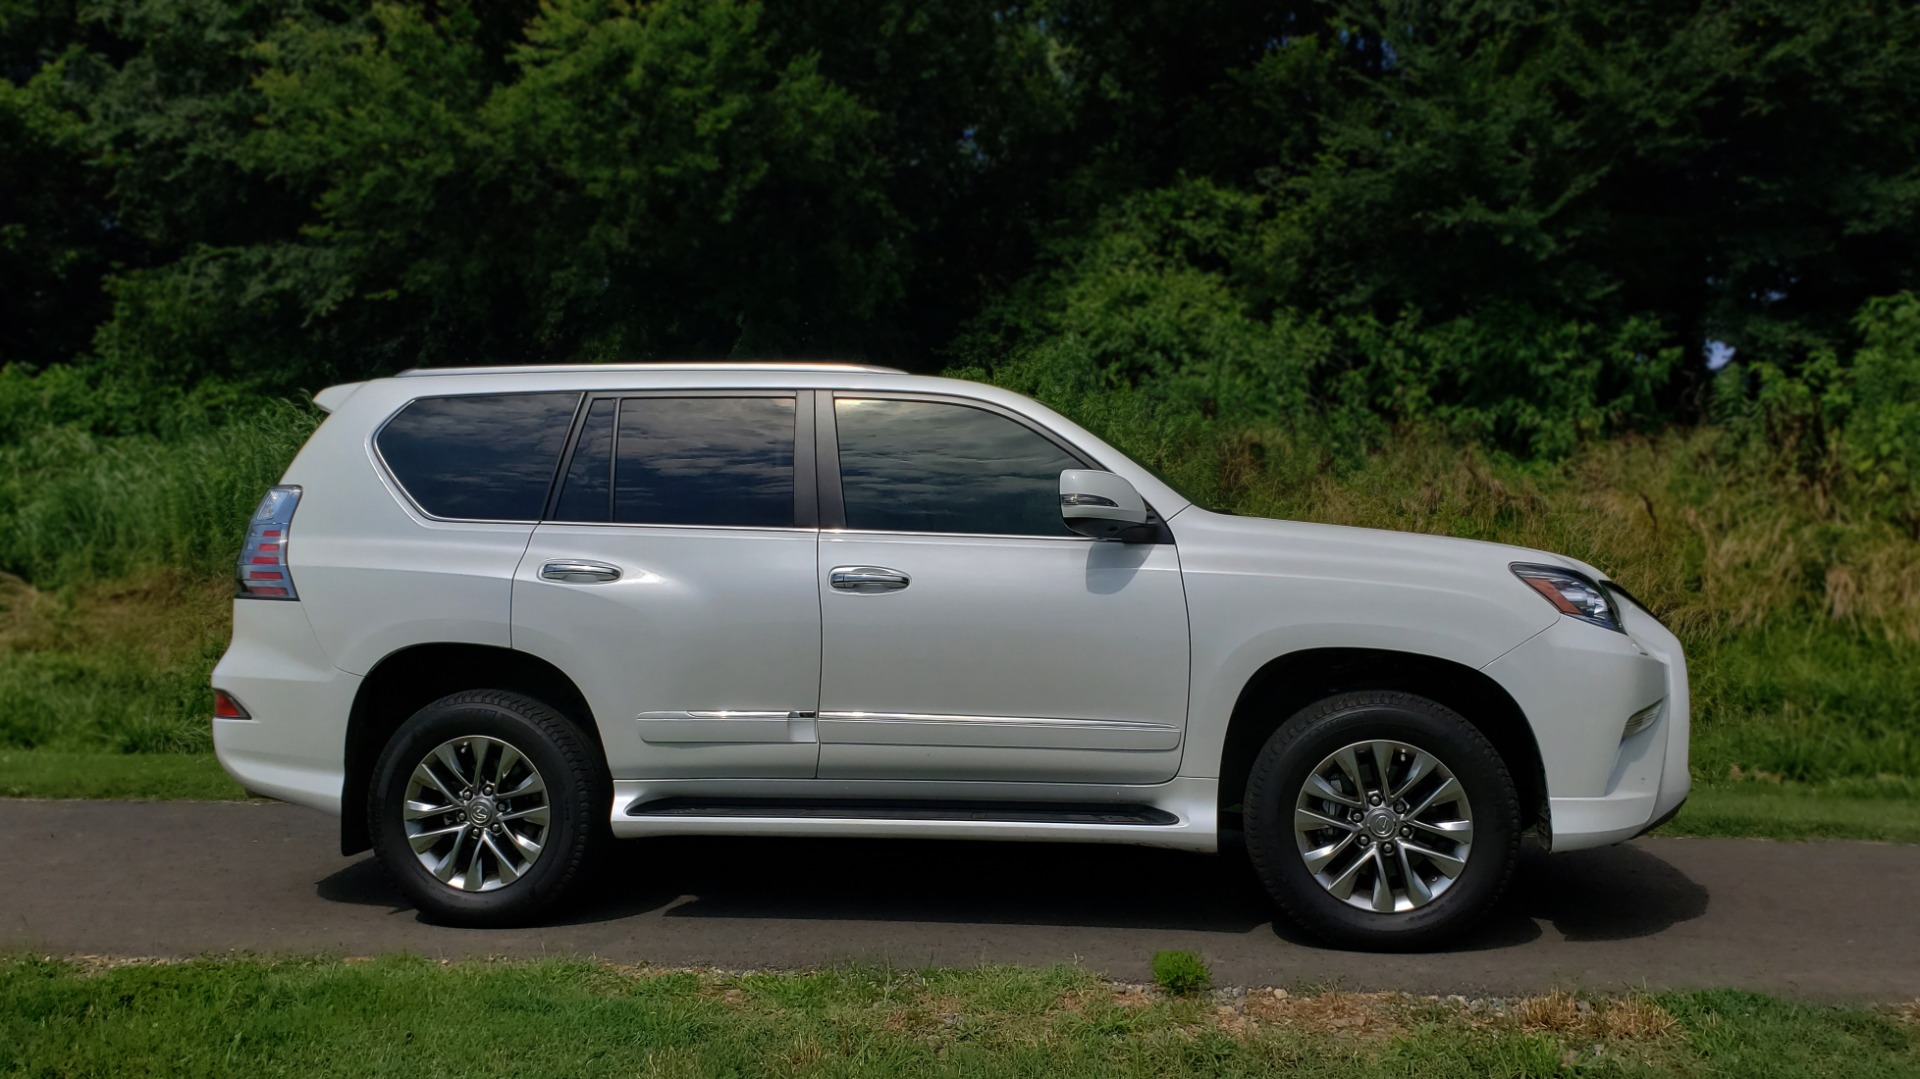 Used 2019 Lexus GX 460 LUXURY 4WD / DRVR SPRT PKG / MARK LEV SND / DYN CRUISE for sale Sold at Formula Imports in Charlotte NC 28227 5